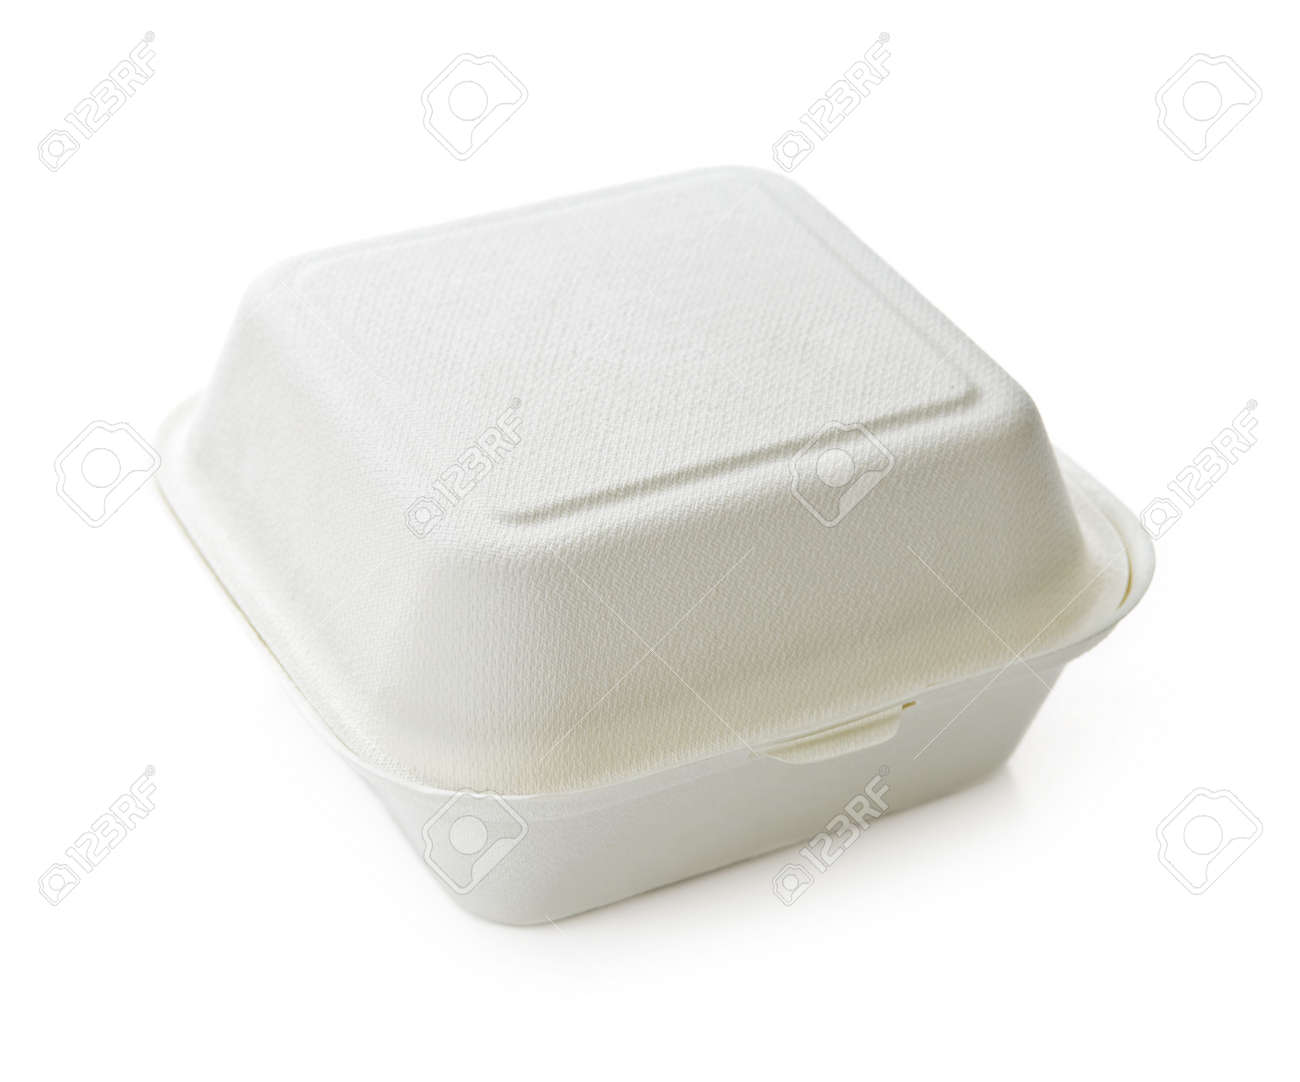 Isolated image of disposable take out container Stock Photo - 5526040